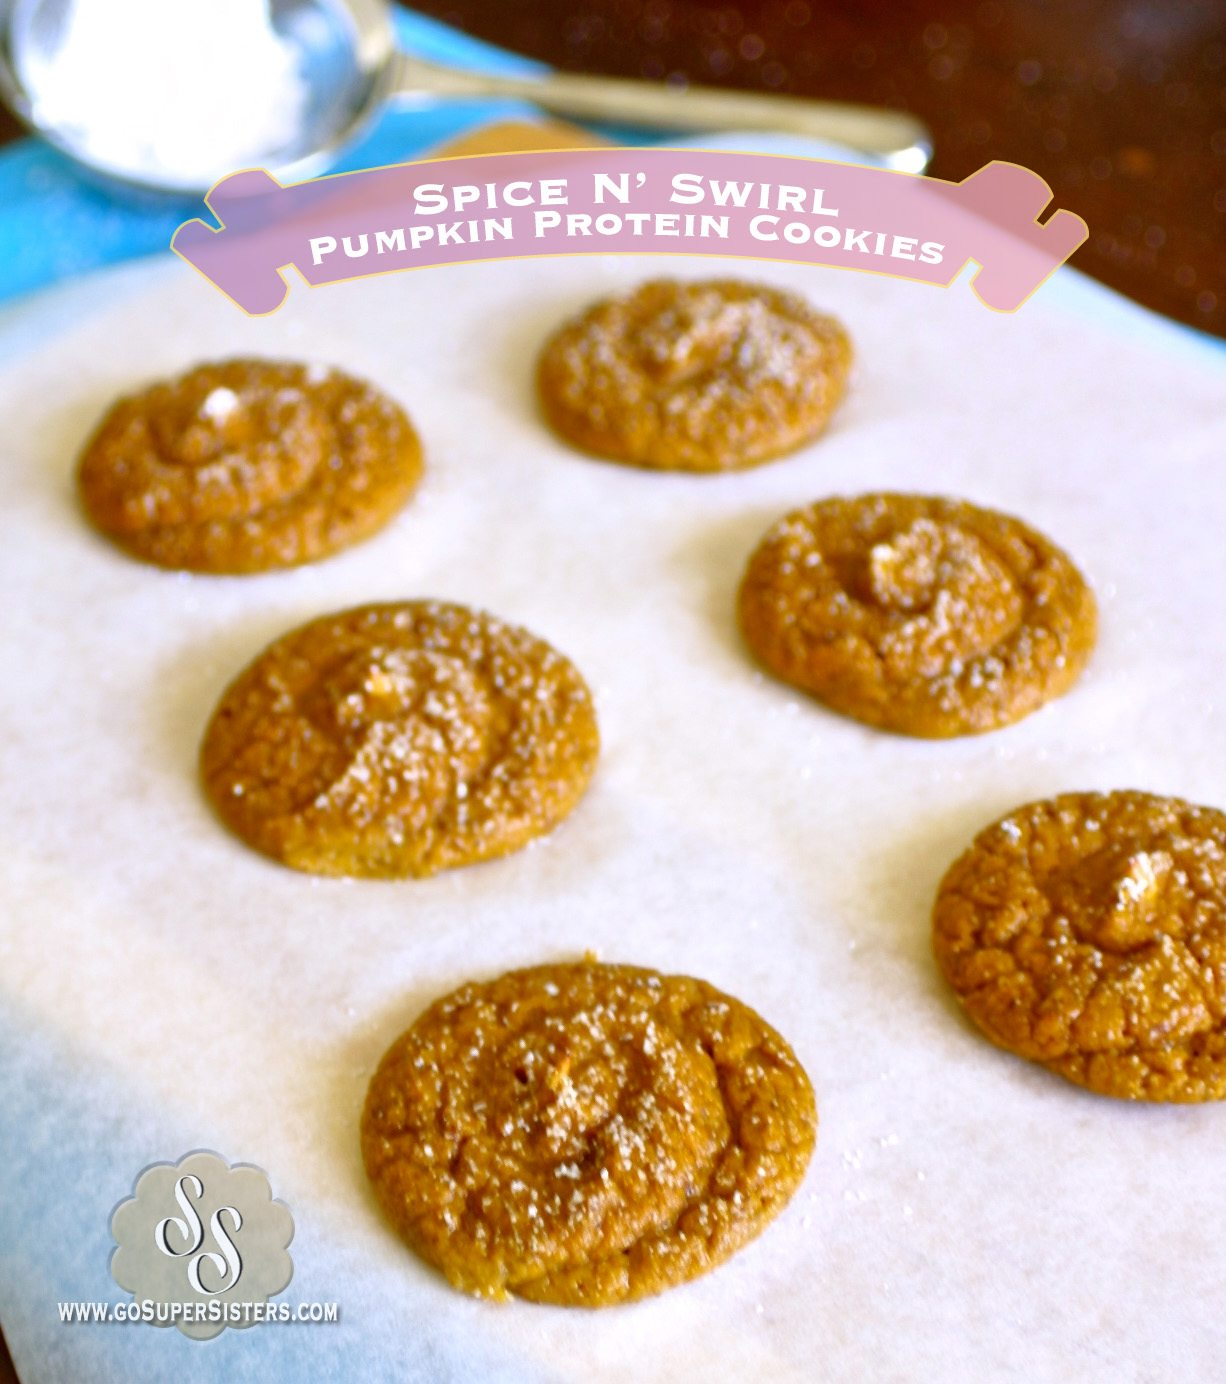 Spice N' Swirl Pumpkin Protein Cookies - Super Sister Fitness